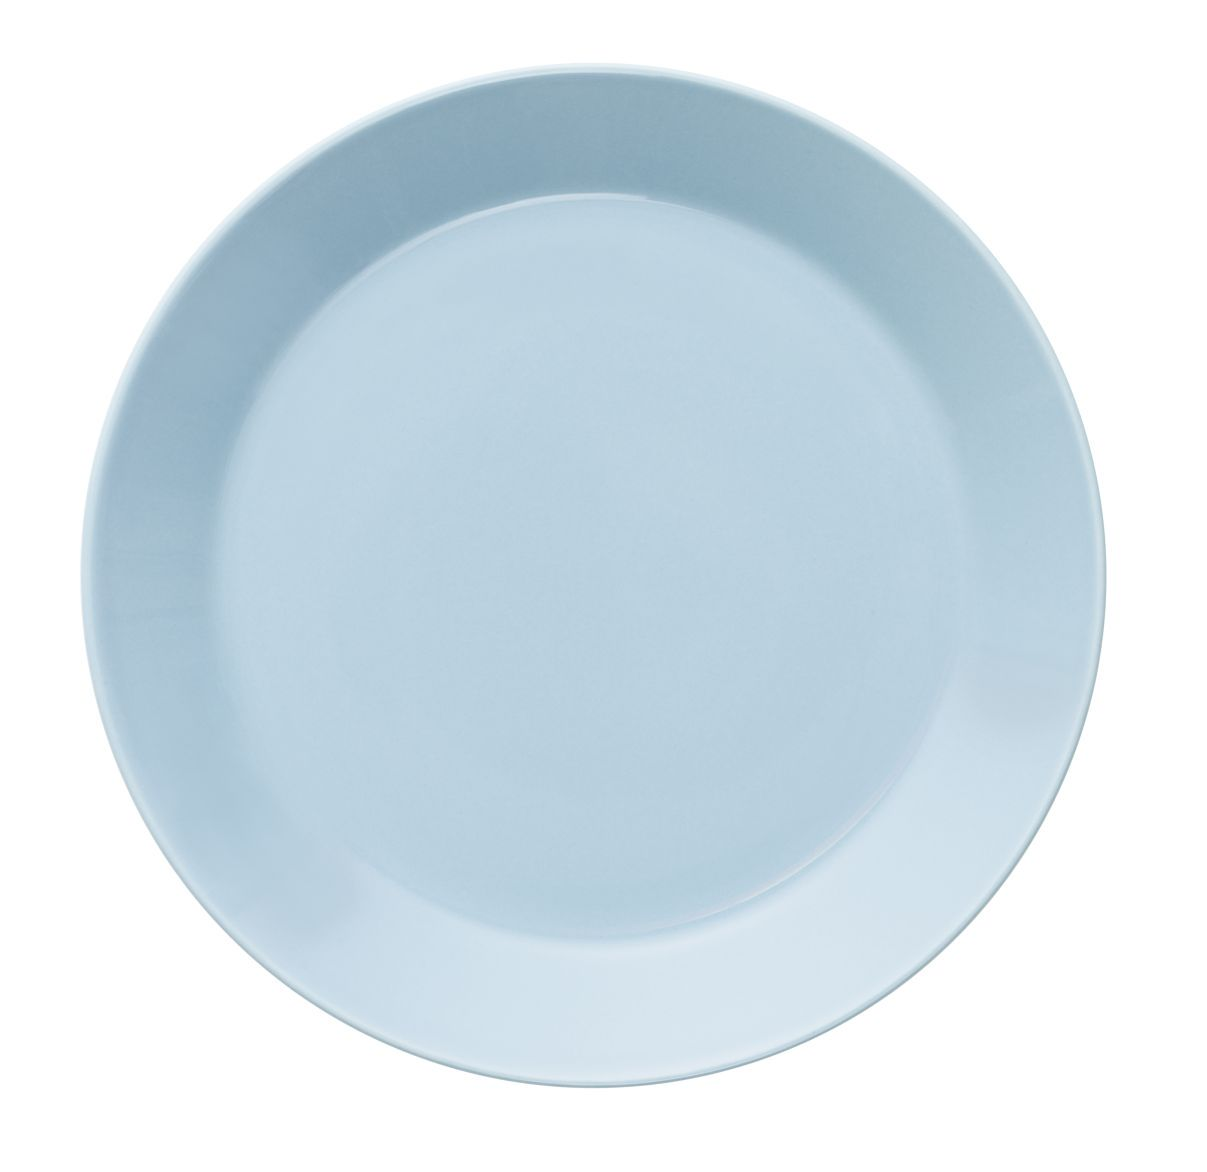 Teema_plate_21cm_light_blue_6411923657860.jpg